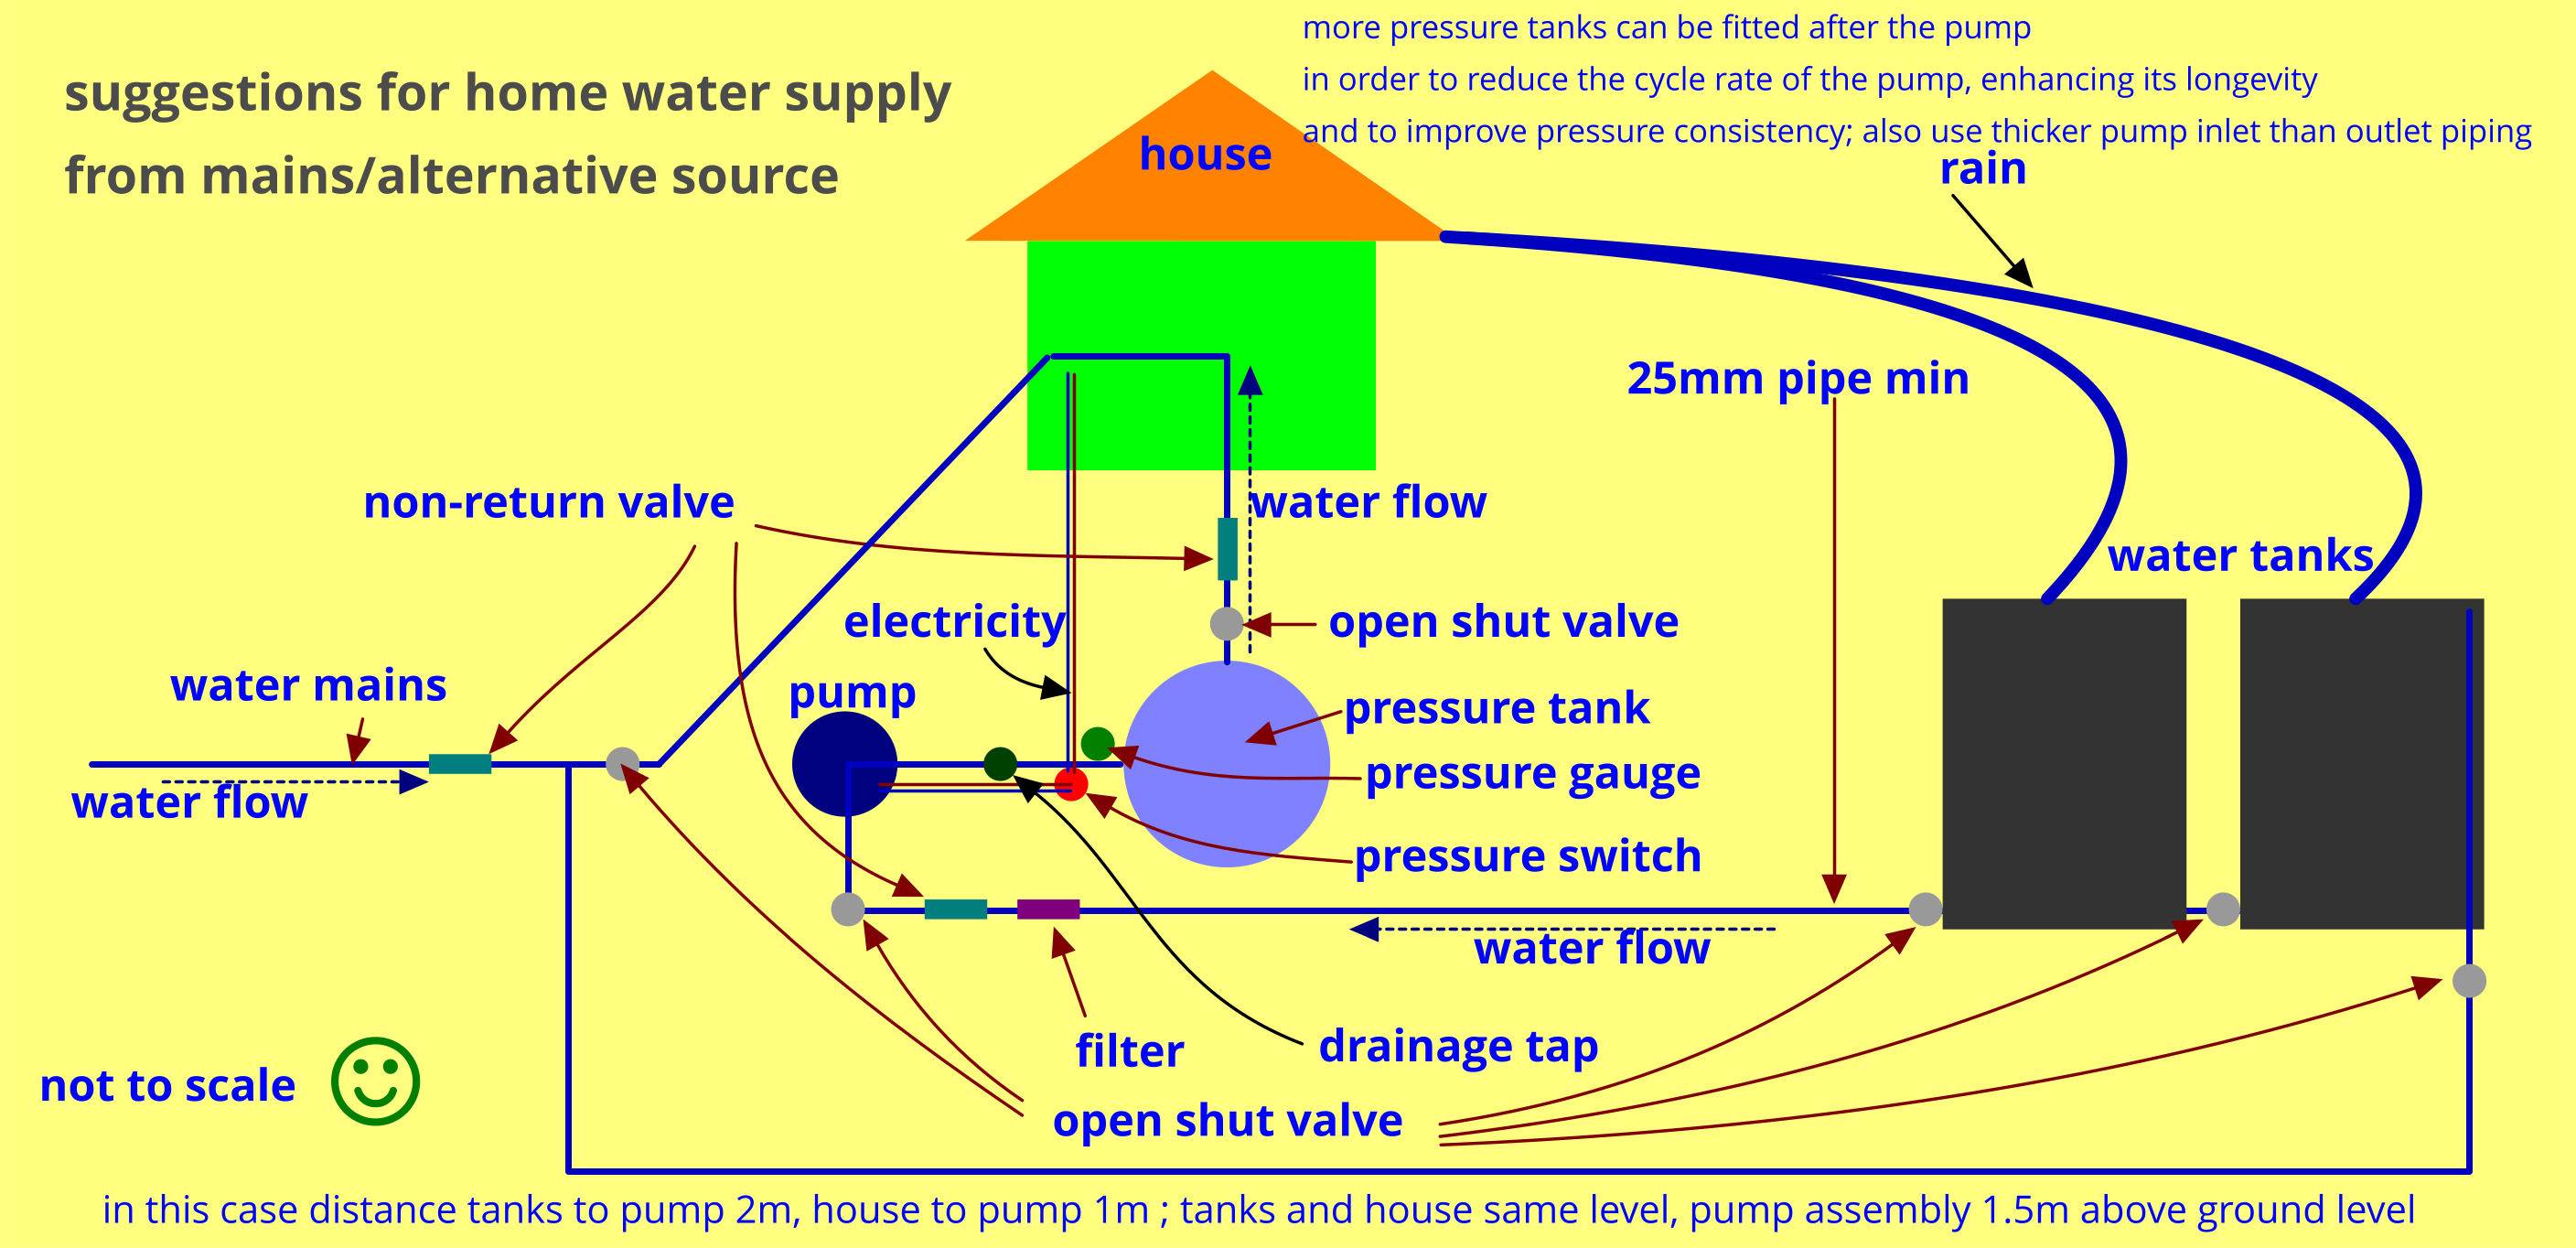 Rainwater Home Supply Assembly Pump Tanks Etc Water Heating Pressure Tank Schematic Pomp Setup Skematies 1